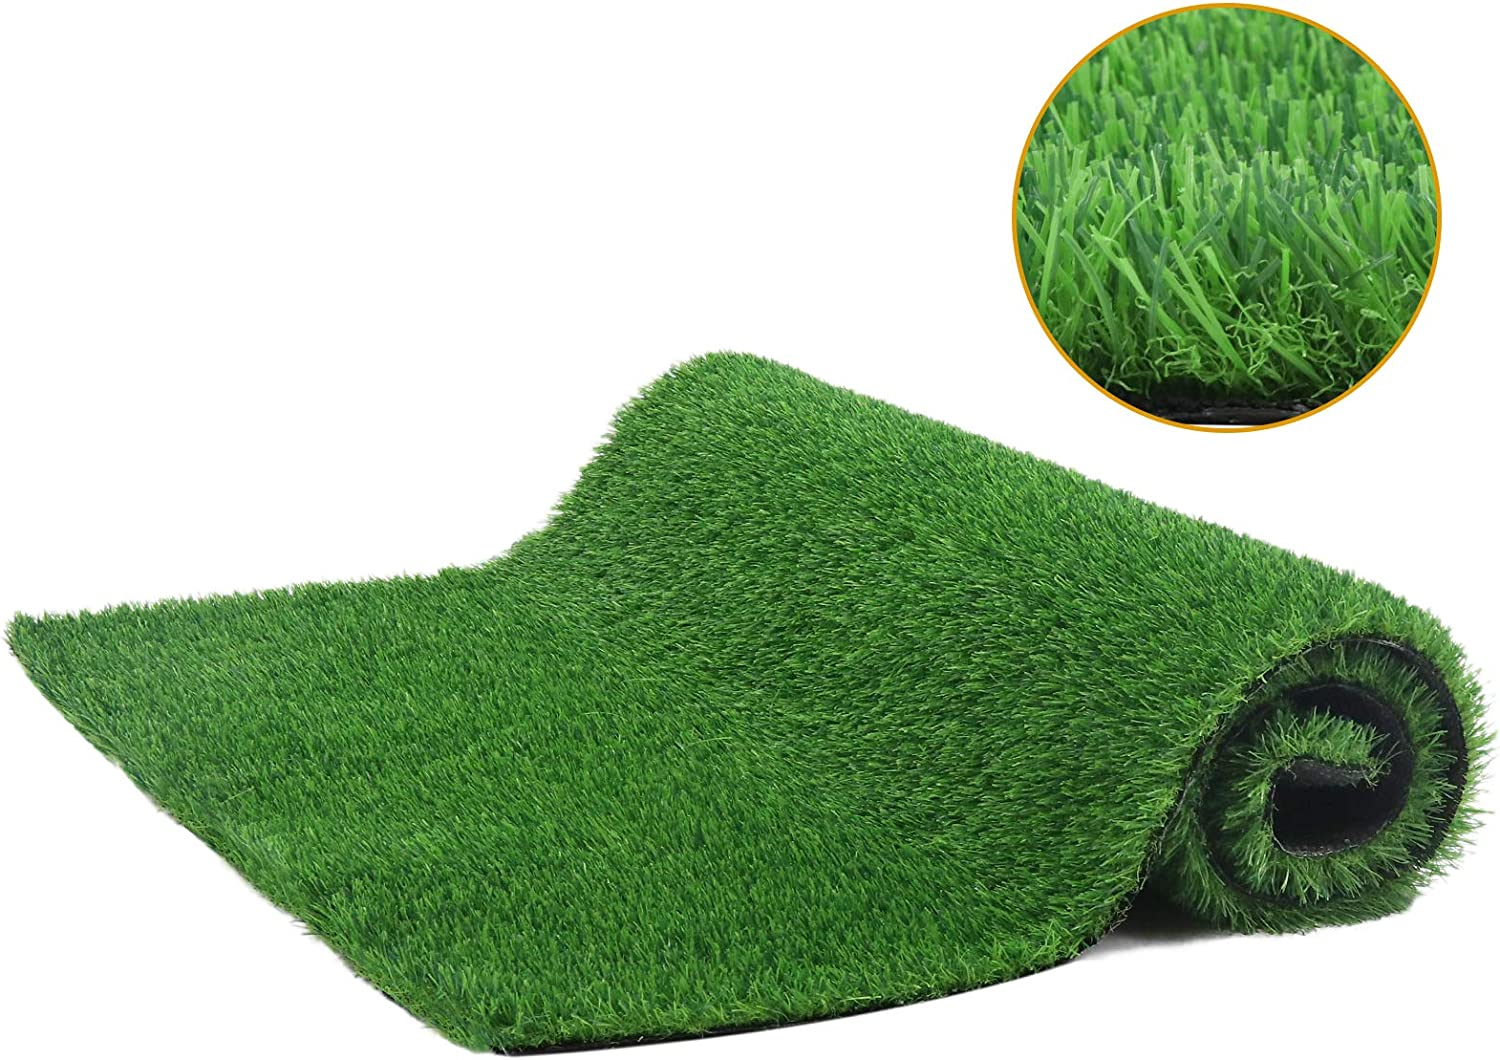 Artificial Grass Turf - 3x5 FTGrass Mat Rug, Synthetic Grass Turfwith Drainage Holes,Faux Grass Carpet Decorfor Indoor Outdoor Garden Patio Lawn Landscape, GrassPad forDogs